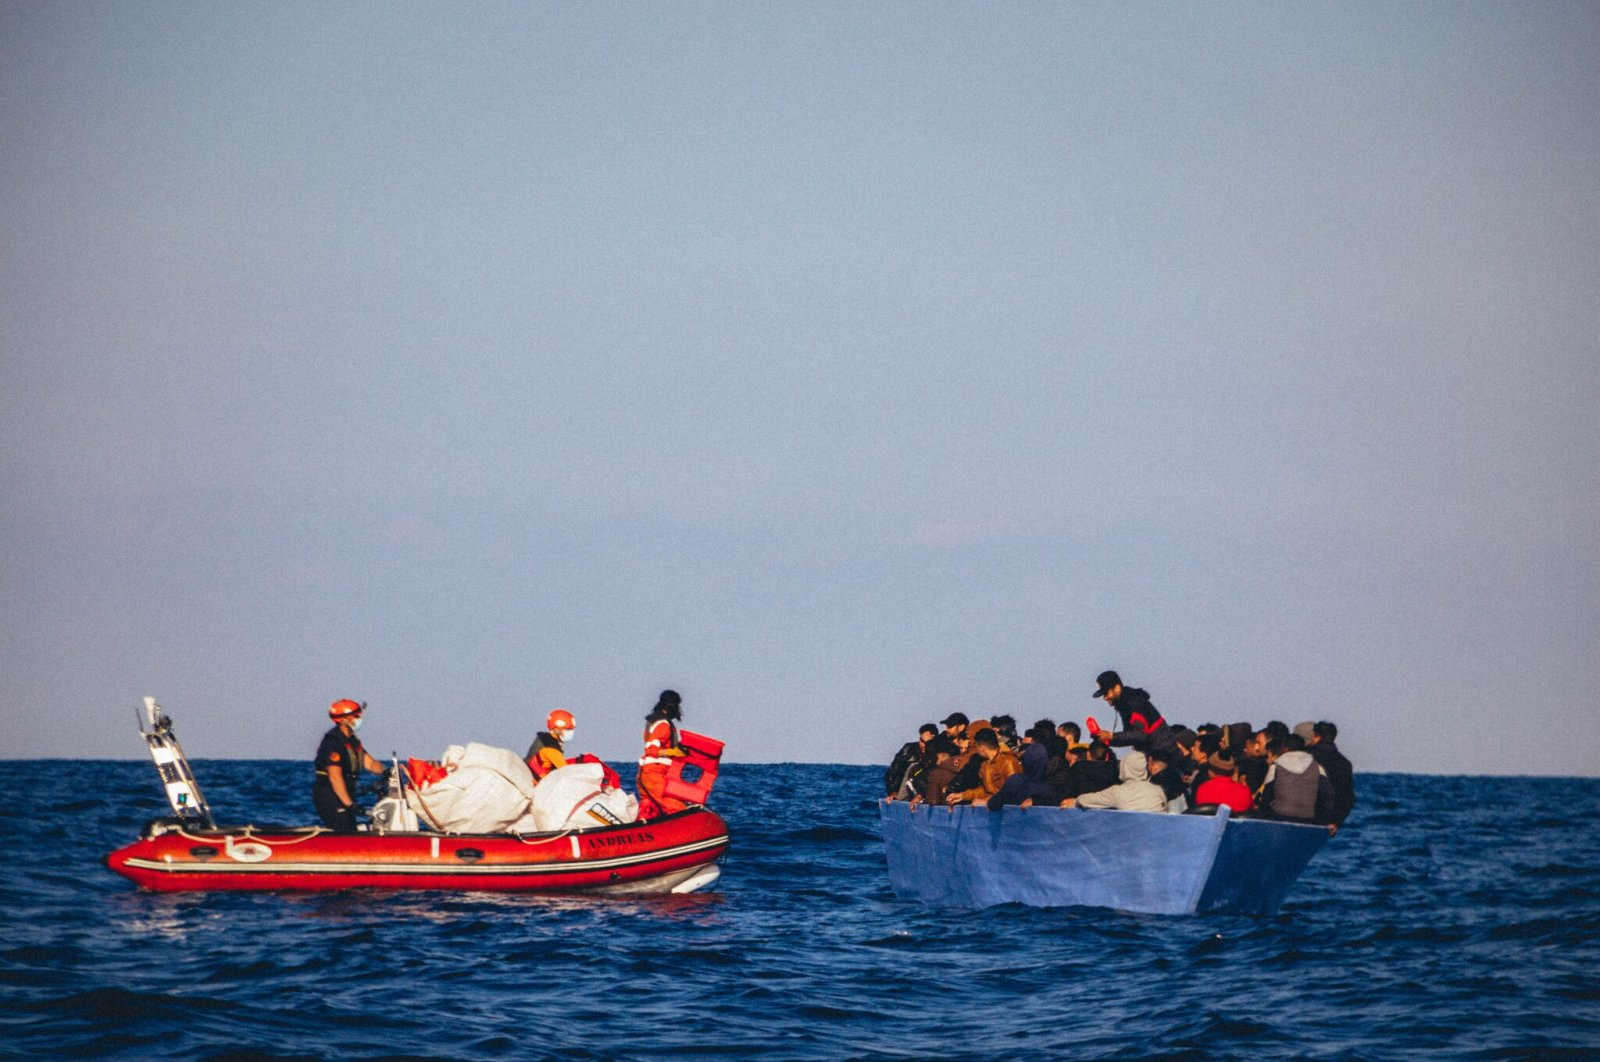 Members of Sea Eye on a rubber boat rescue people from a small wooden boat in distress off the Libyan coast, Monday, April 6, 2020. (AFP Photo)